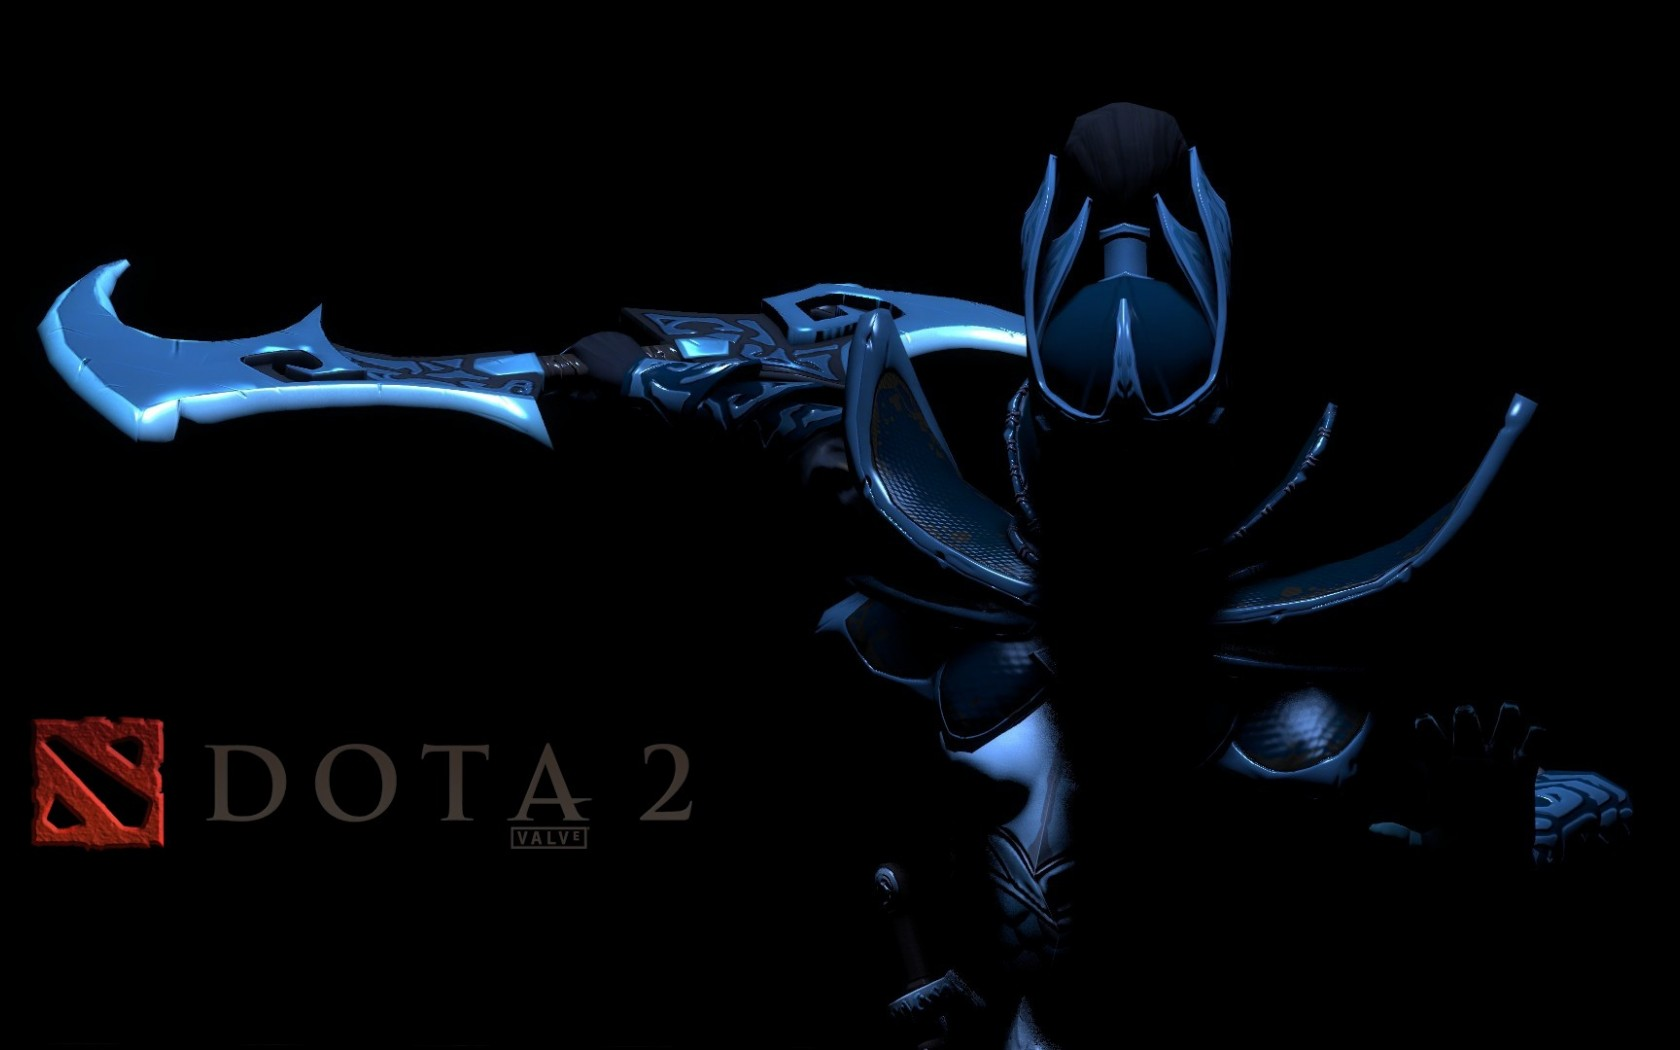 dota2 wallpapers.seoplus.com.ua 96